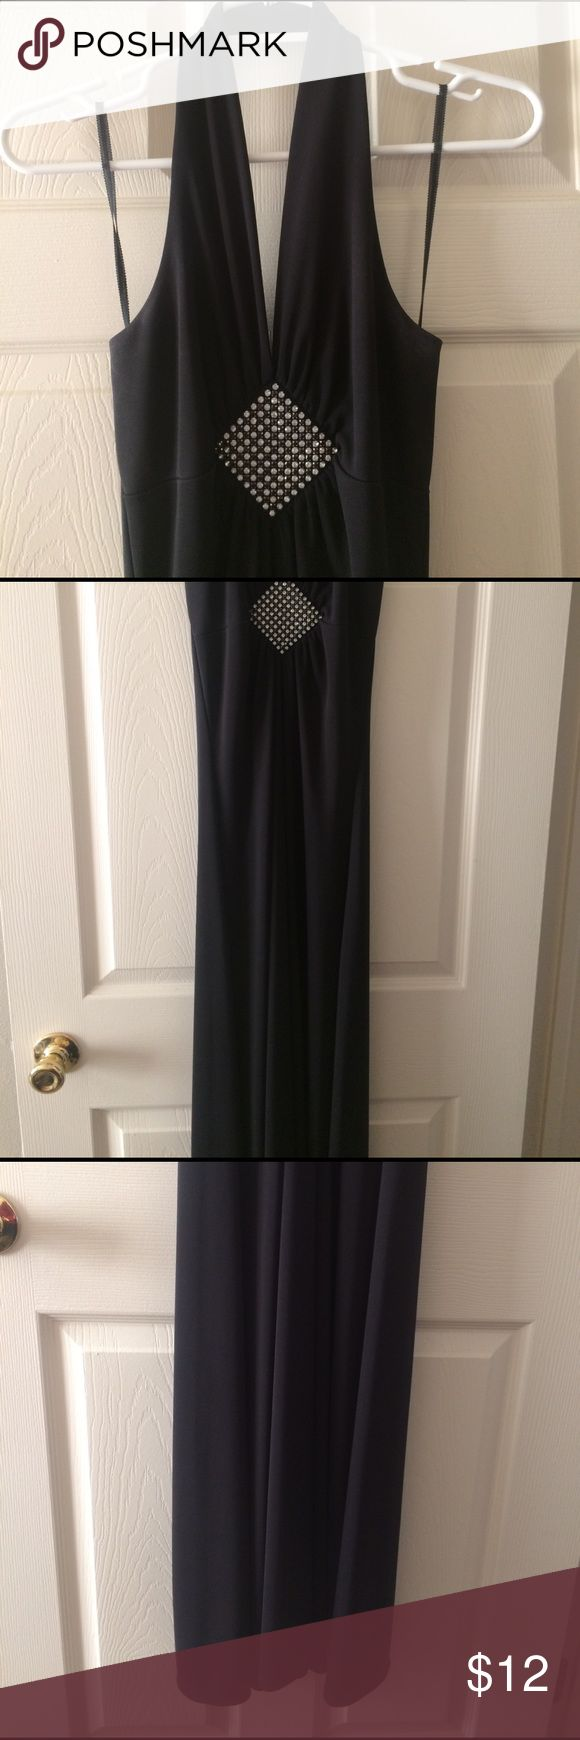 Long black elegant dress 👗 Simple yet gorgeous. Slide right in, no zippers or hooks which I like! Tighter fitting, halter top! I took a pic of the slit in the back of the dress! Perfect for formal wear, prom, etc! Worn once. *NOTE: one of the jewels is out as seen in pic*-probably an easy fix if you have a 💎jewel! Taboo Dresses Prom